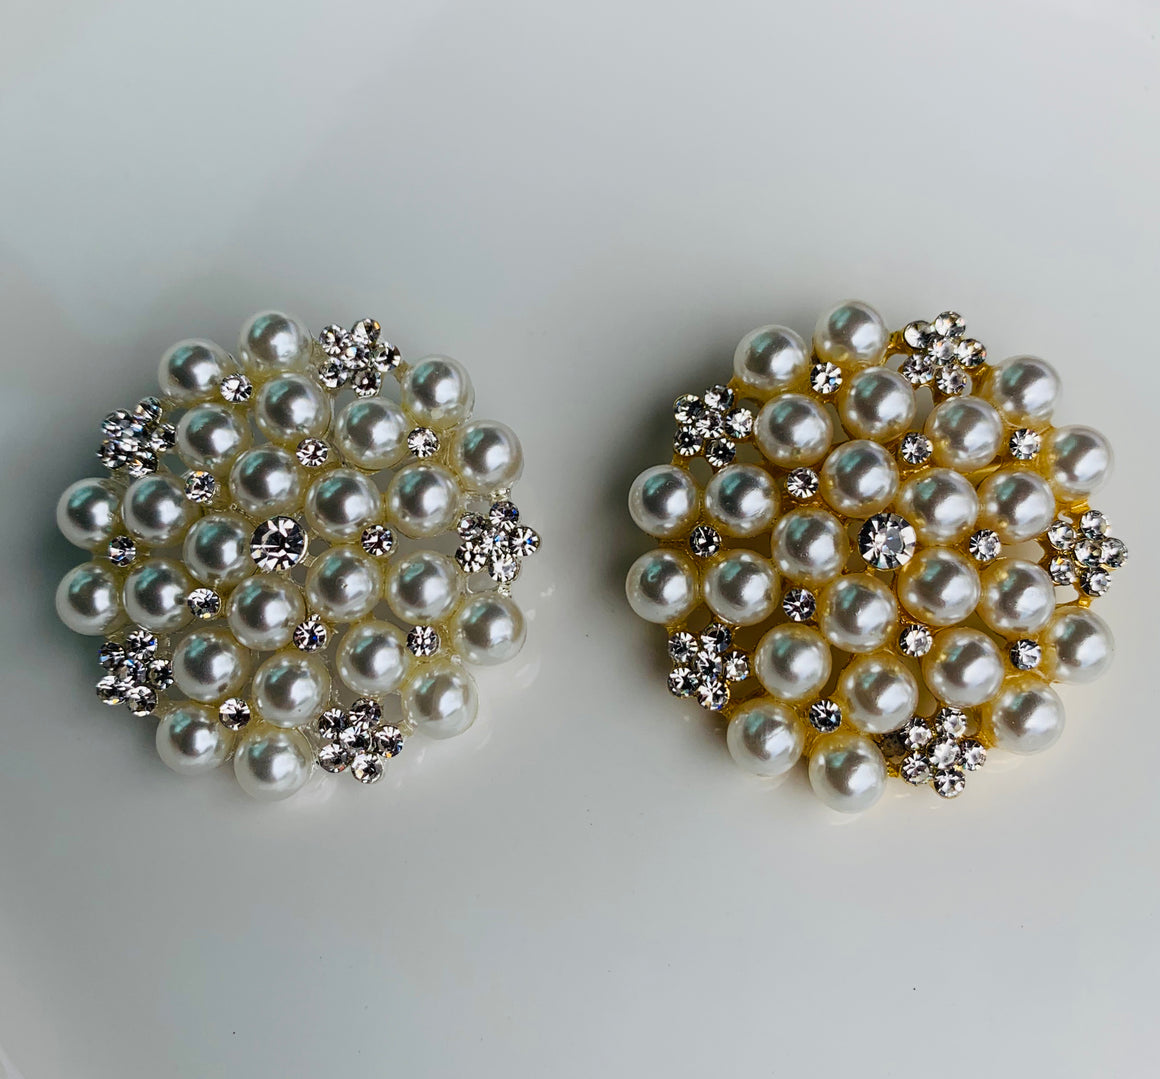 Wedding Brooch - 2 Pack